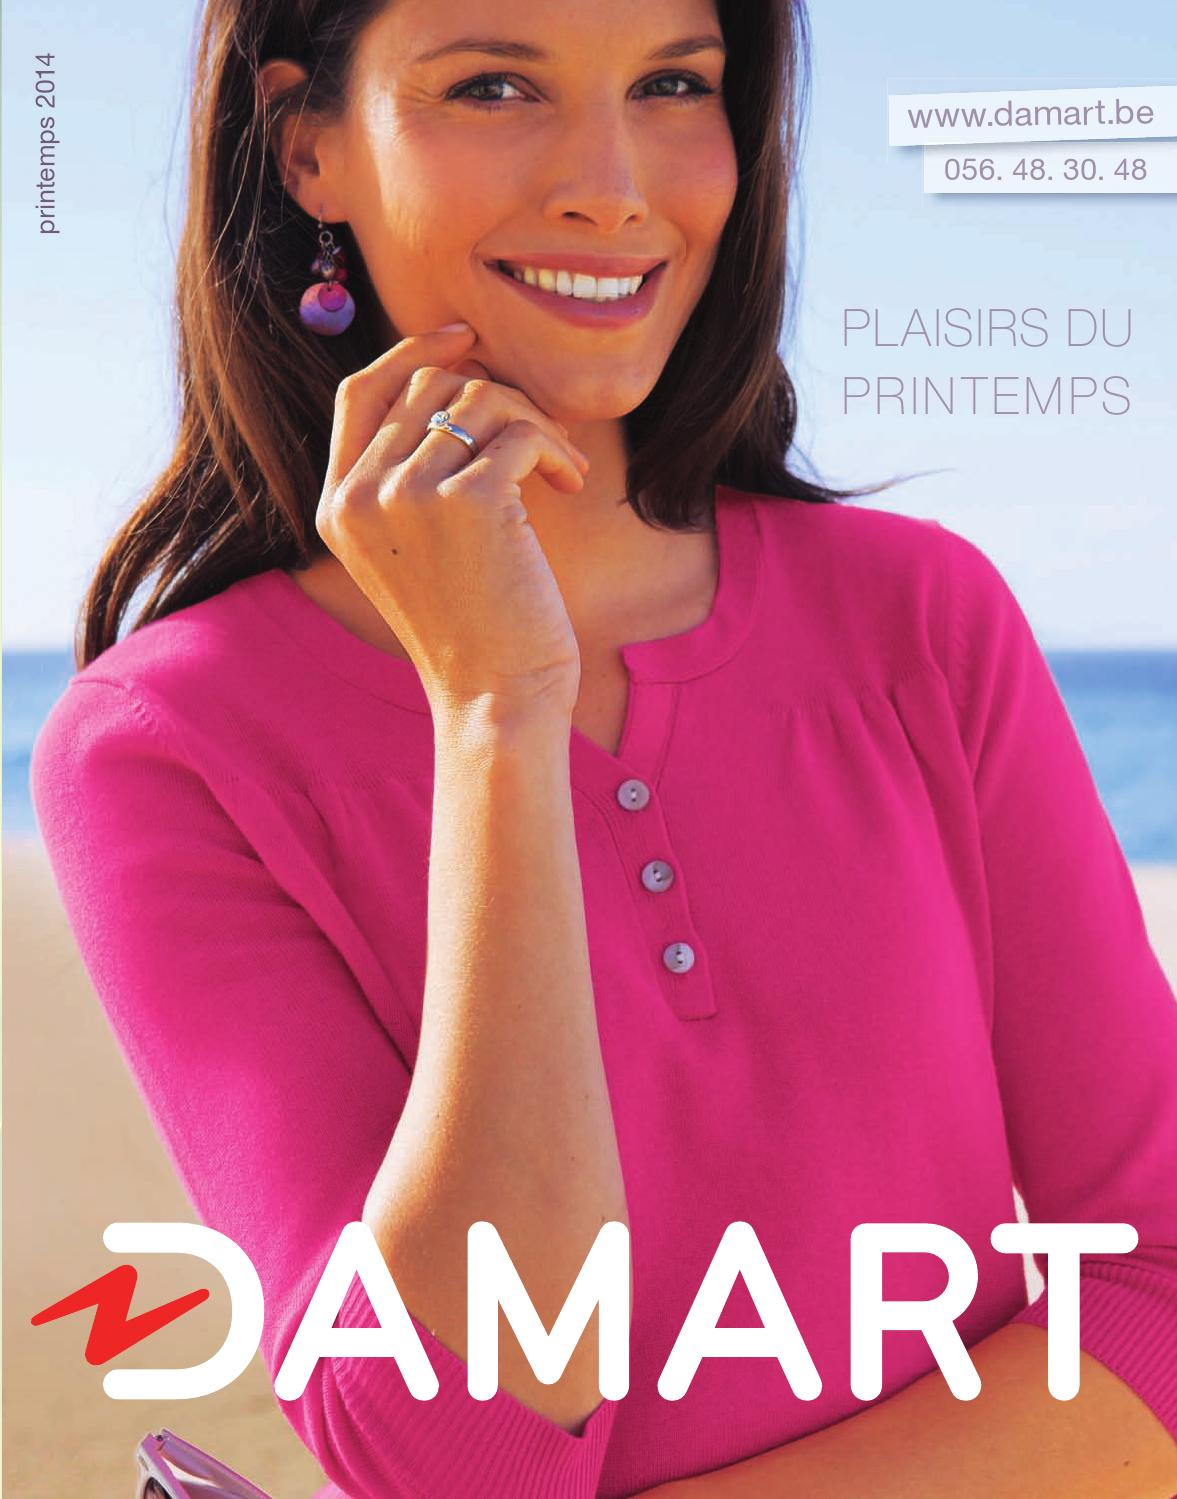 Mars Damart 2014 Du Printemps Plaisir By Issuu IW29eEYbDH